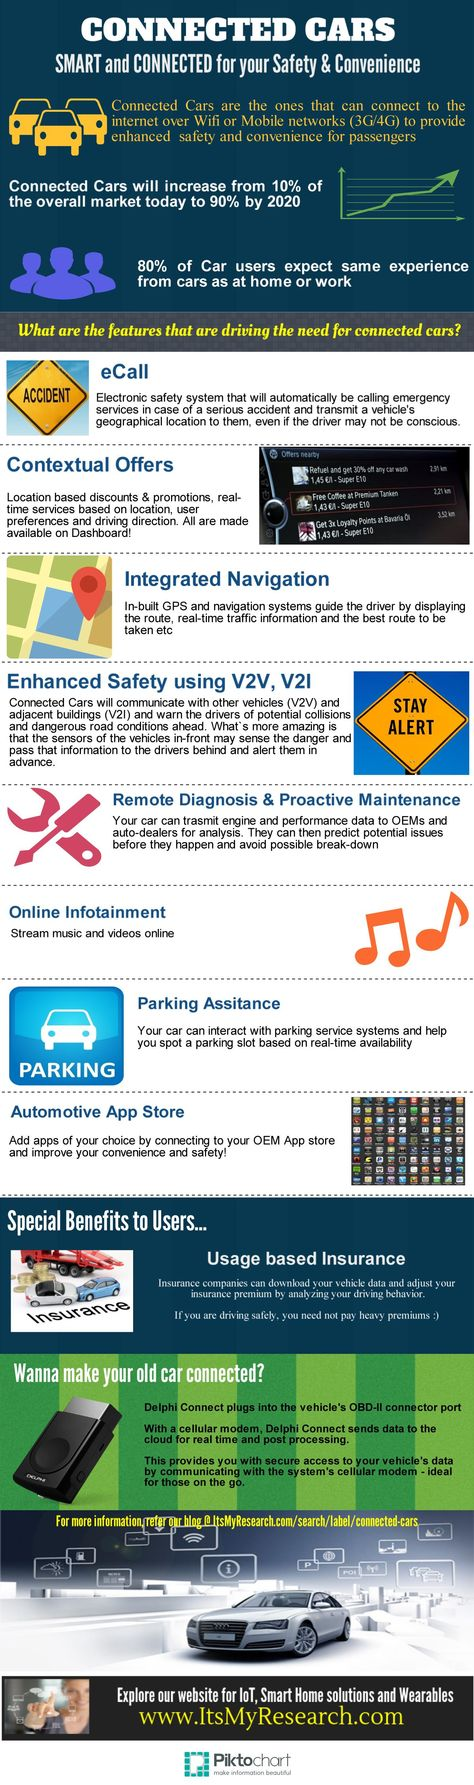 8 best connected cars iot images on pinterest automobile 8 best connected cars iot images on pinterest automobile visual schedules and cars gamestrikefo Image collections